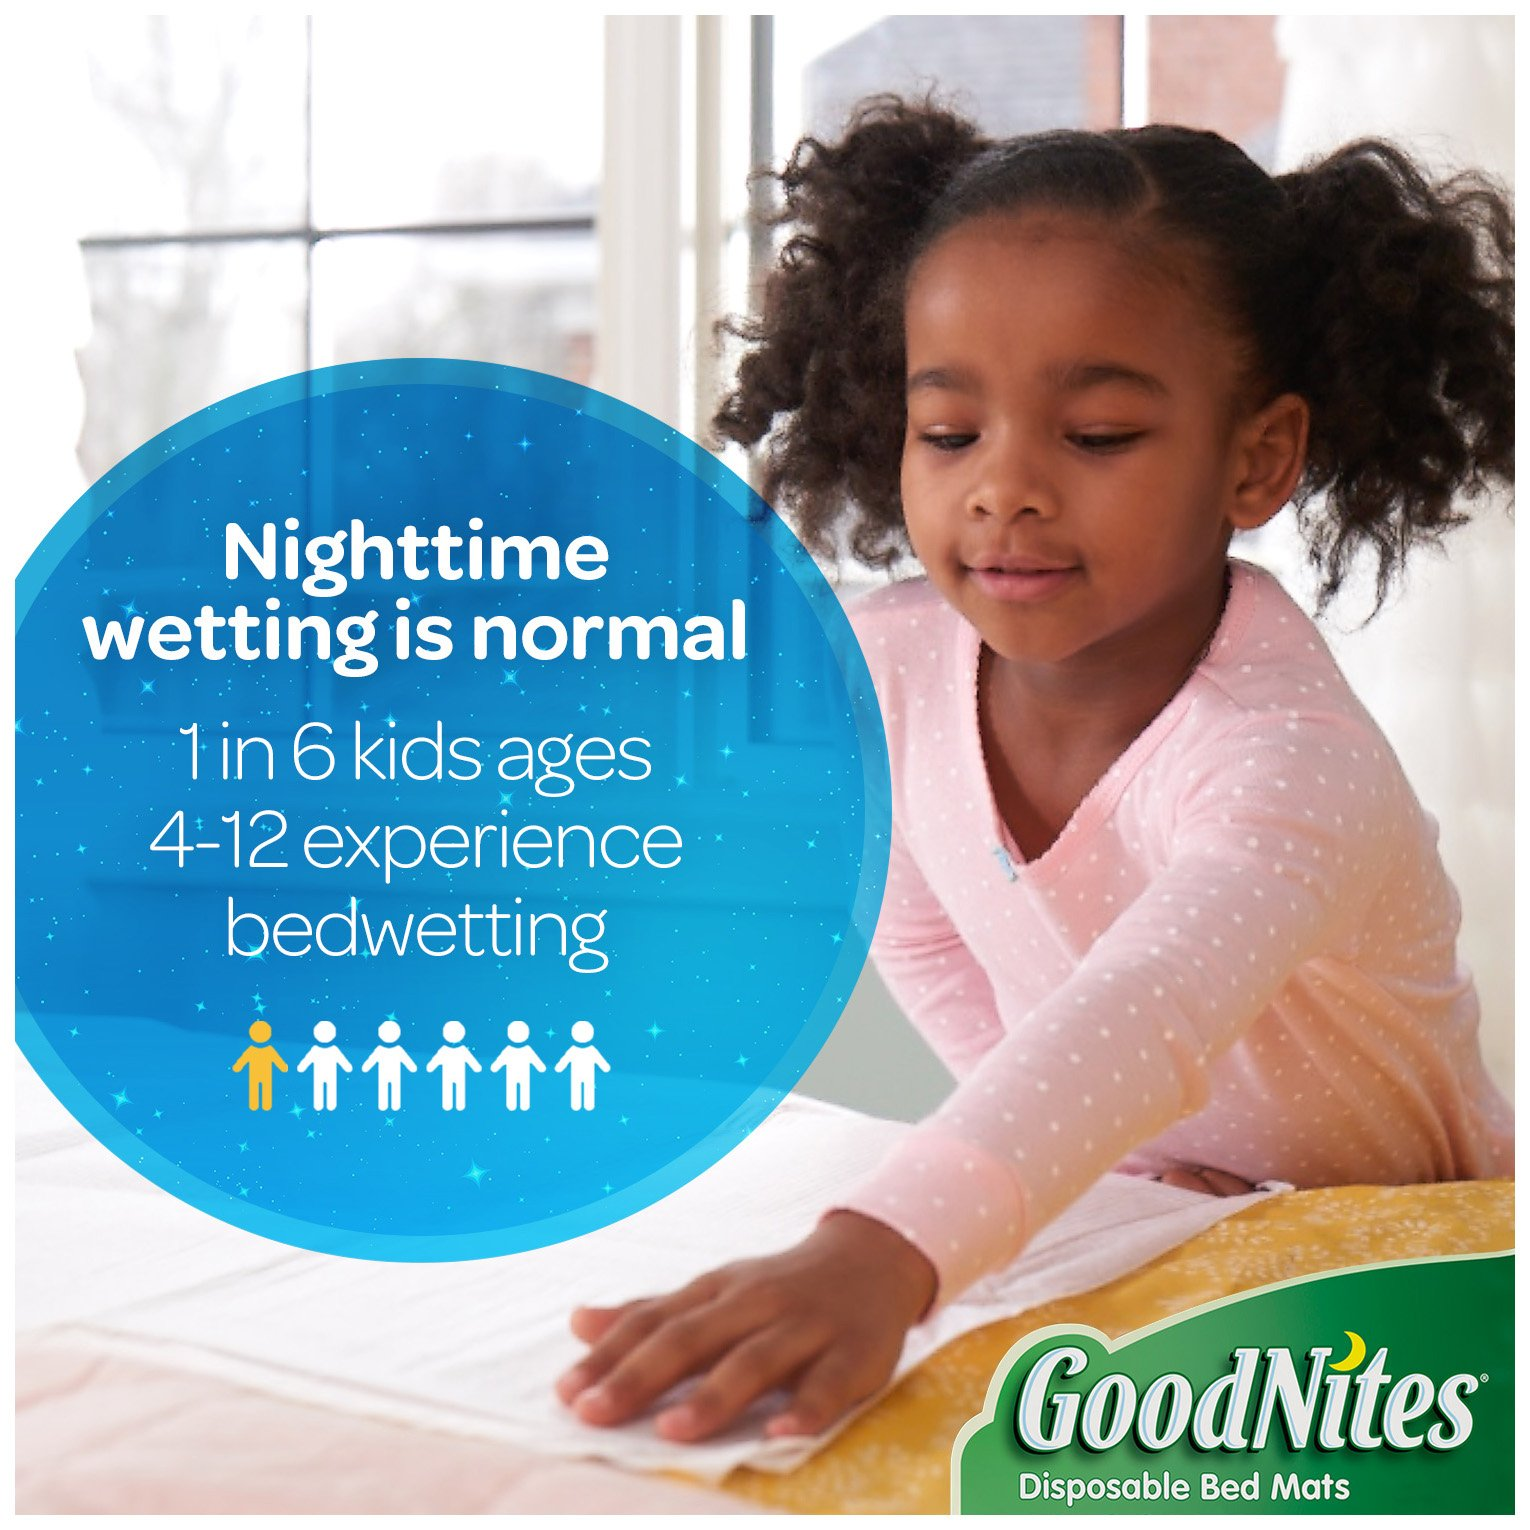 GoodNites Disposable Bed Mats, 36 Count by GoodNites (Image #5)